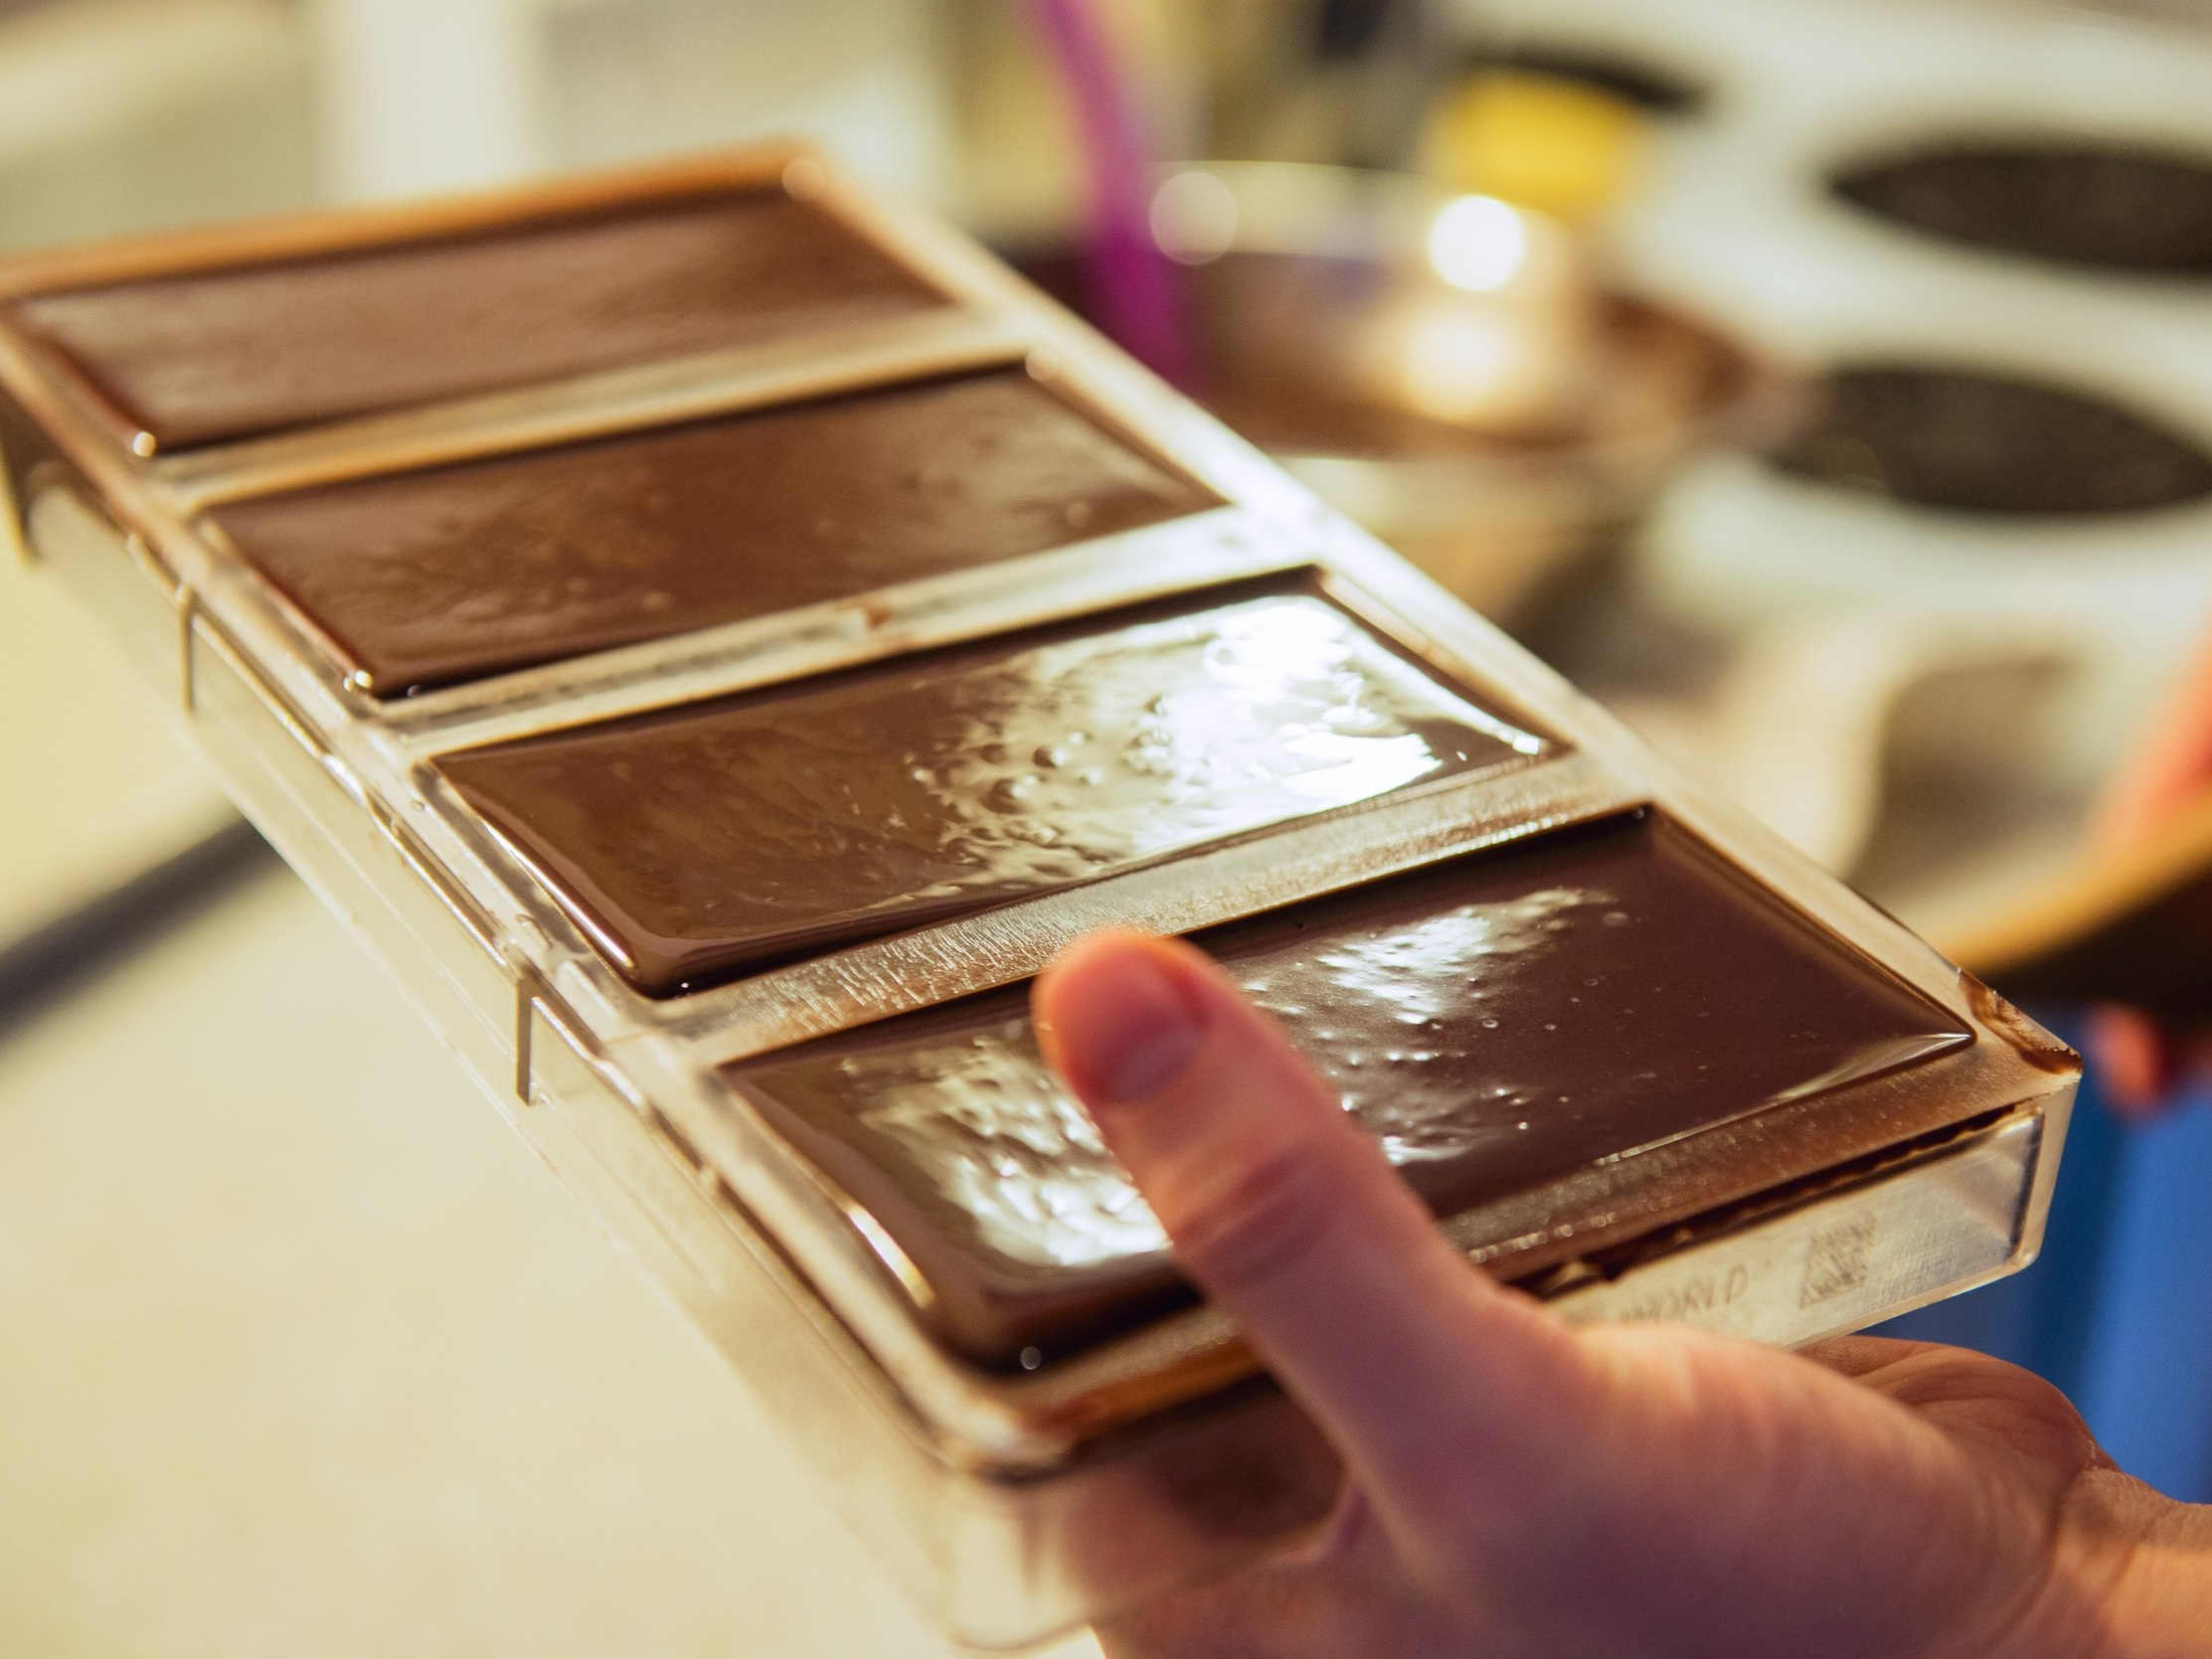 Moulding - Finally, the chocolate is ready to be moulded into a bar, packaged, and enjoyed by you.